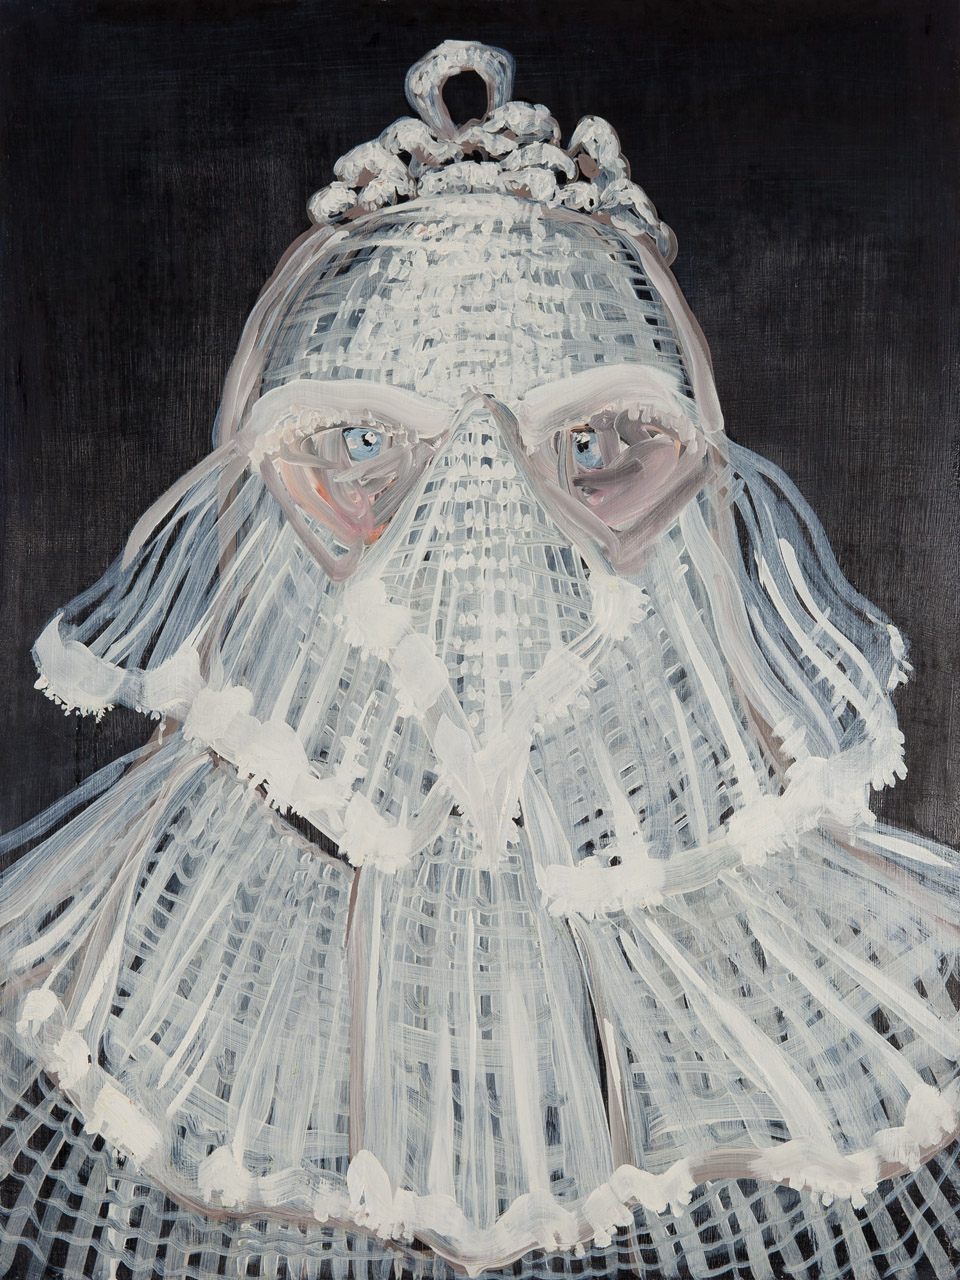 Lizza Littlewort  'The Concealing Veil of White Entitlement'  Oil on board  80 x 60 cm